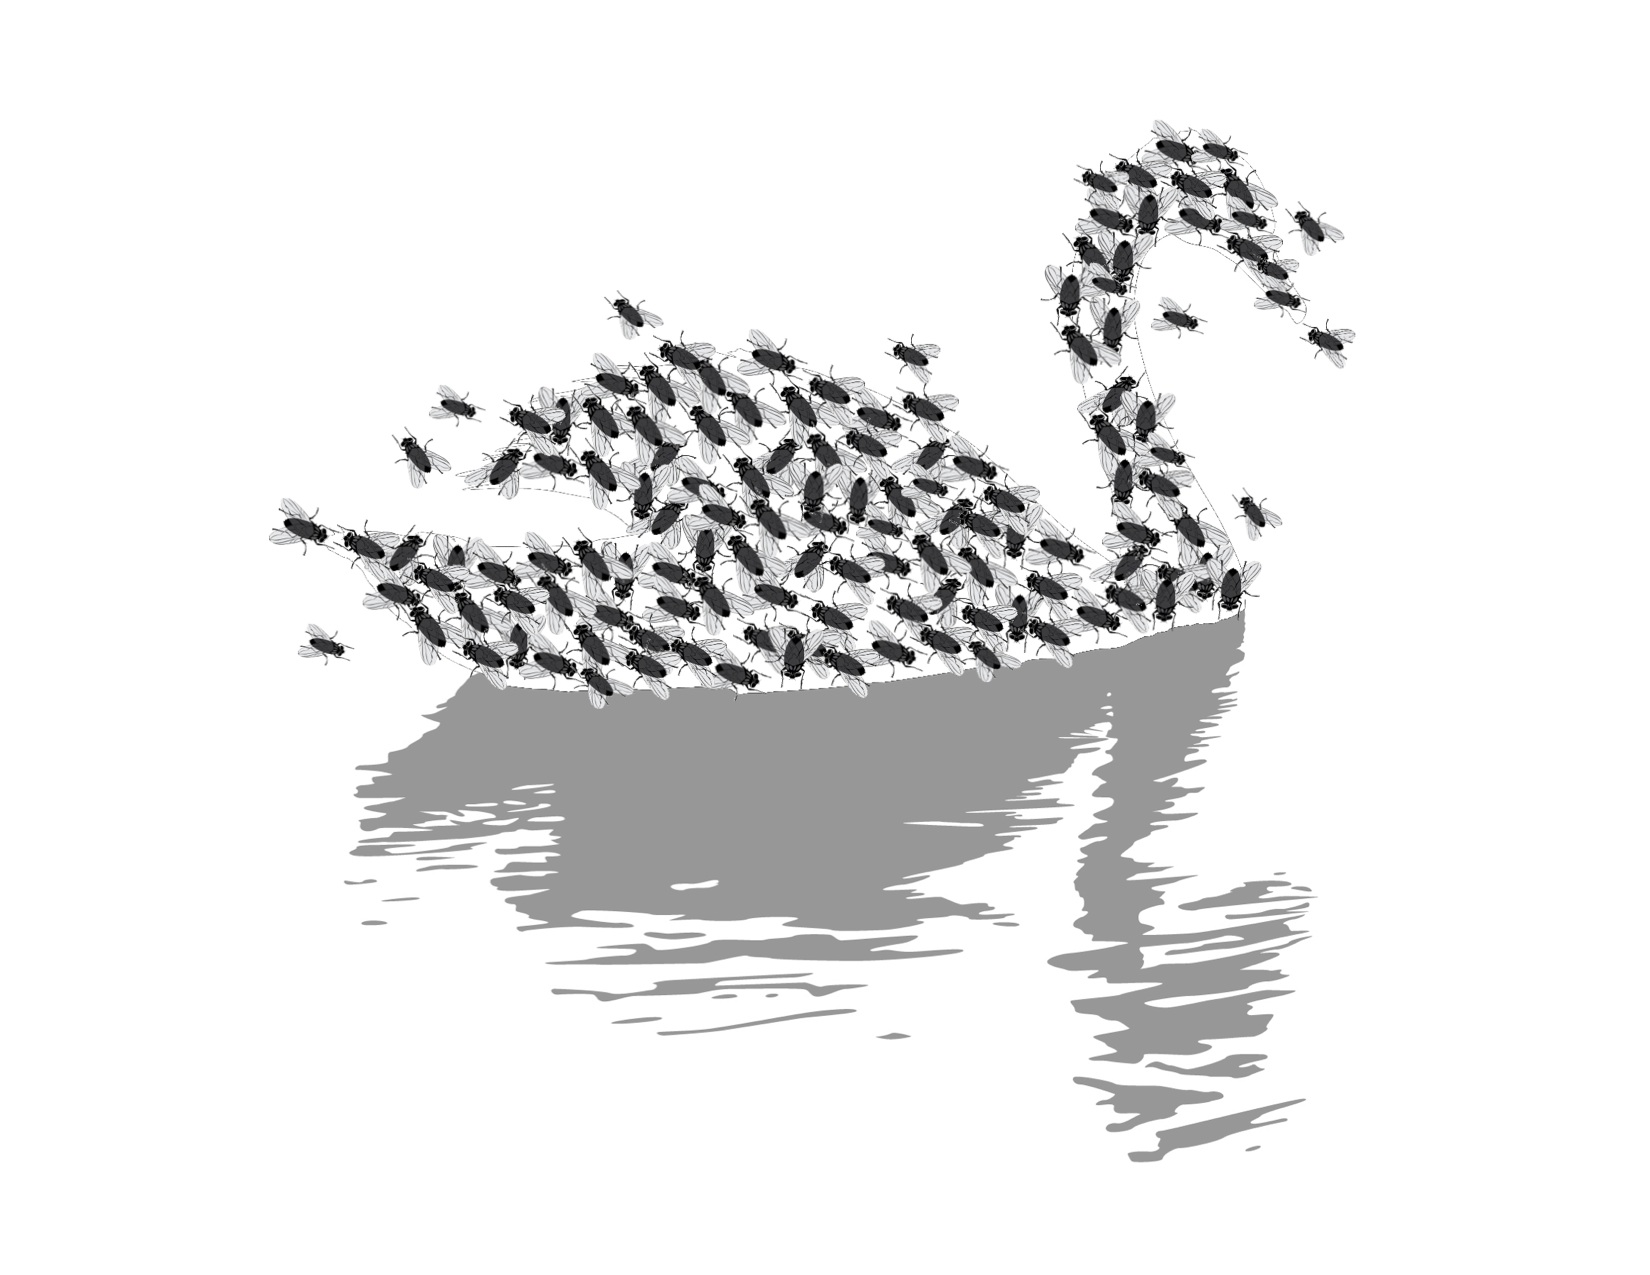 Why Your Company S Big Crisis Won T Be A Black Swan